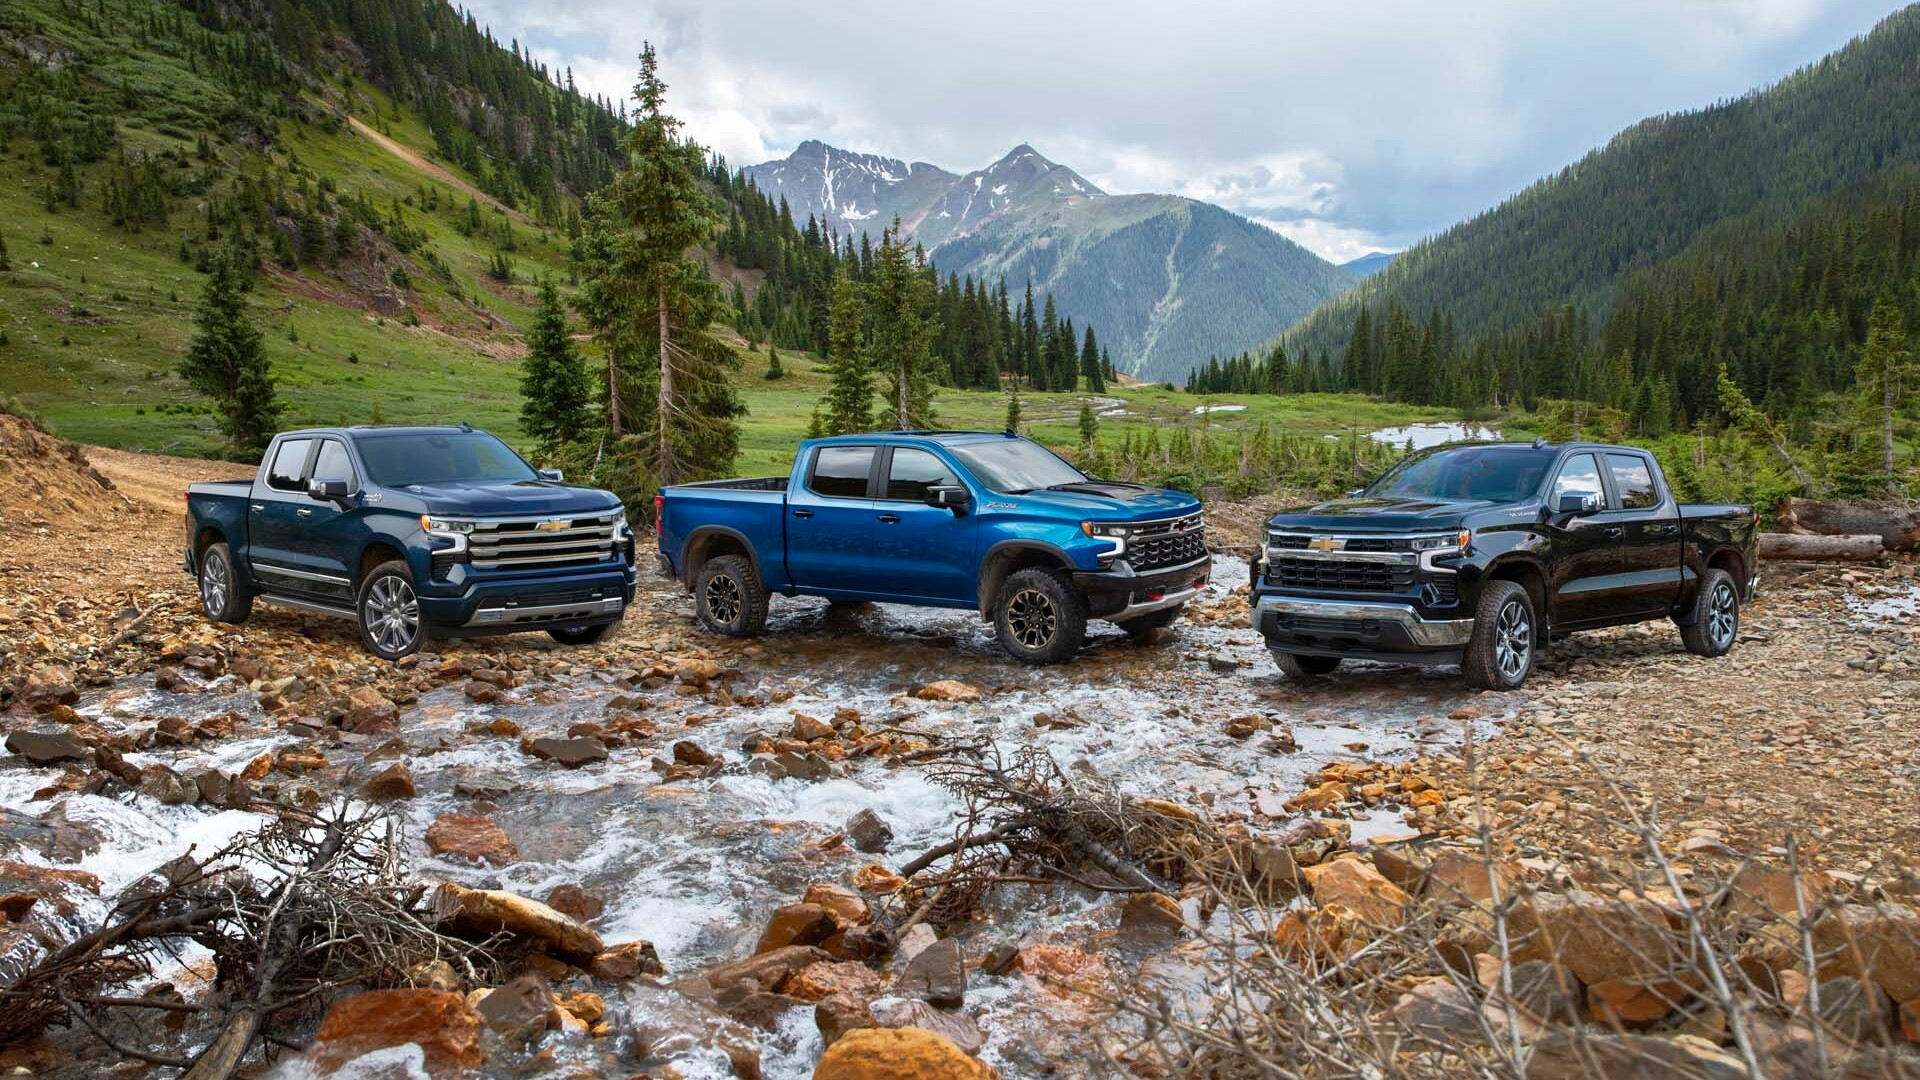 2022 Chevrolet Silverado 1500 High Country, ZR2, LT, from left to right